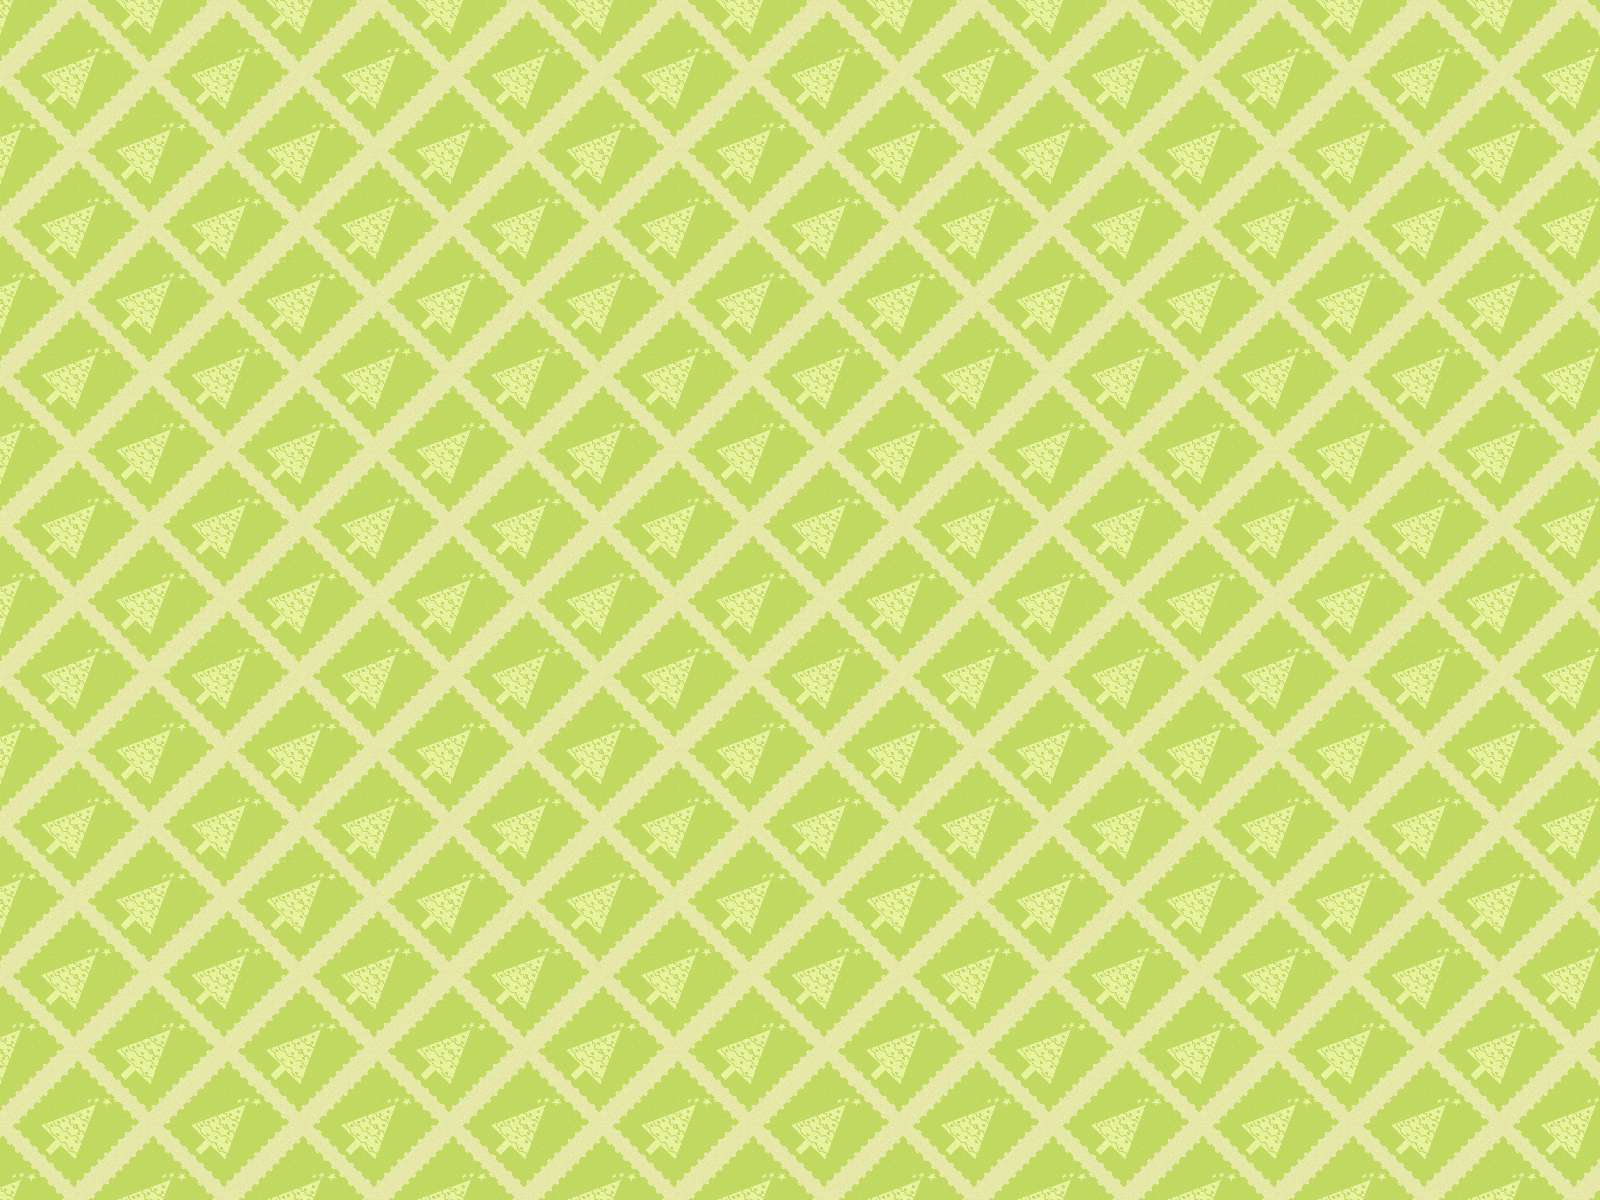 Free Background Patterns - PowerPoint Backgrounds for Free